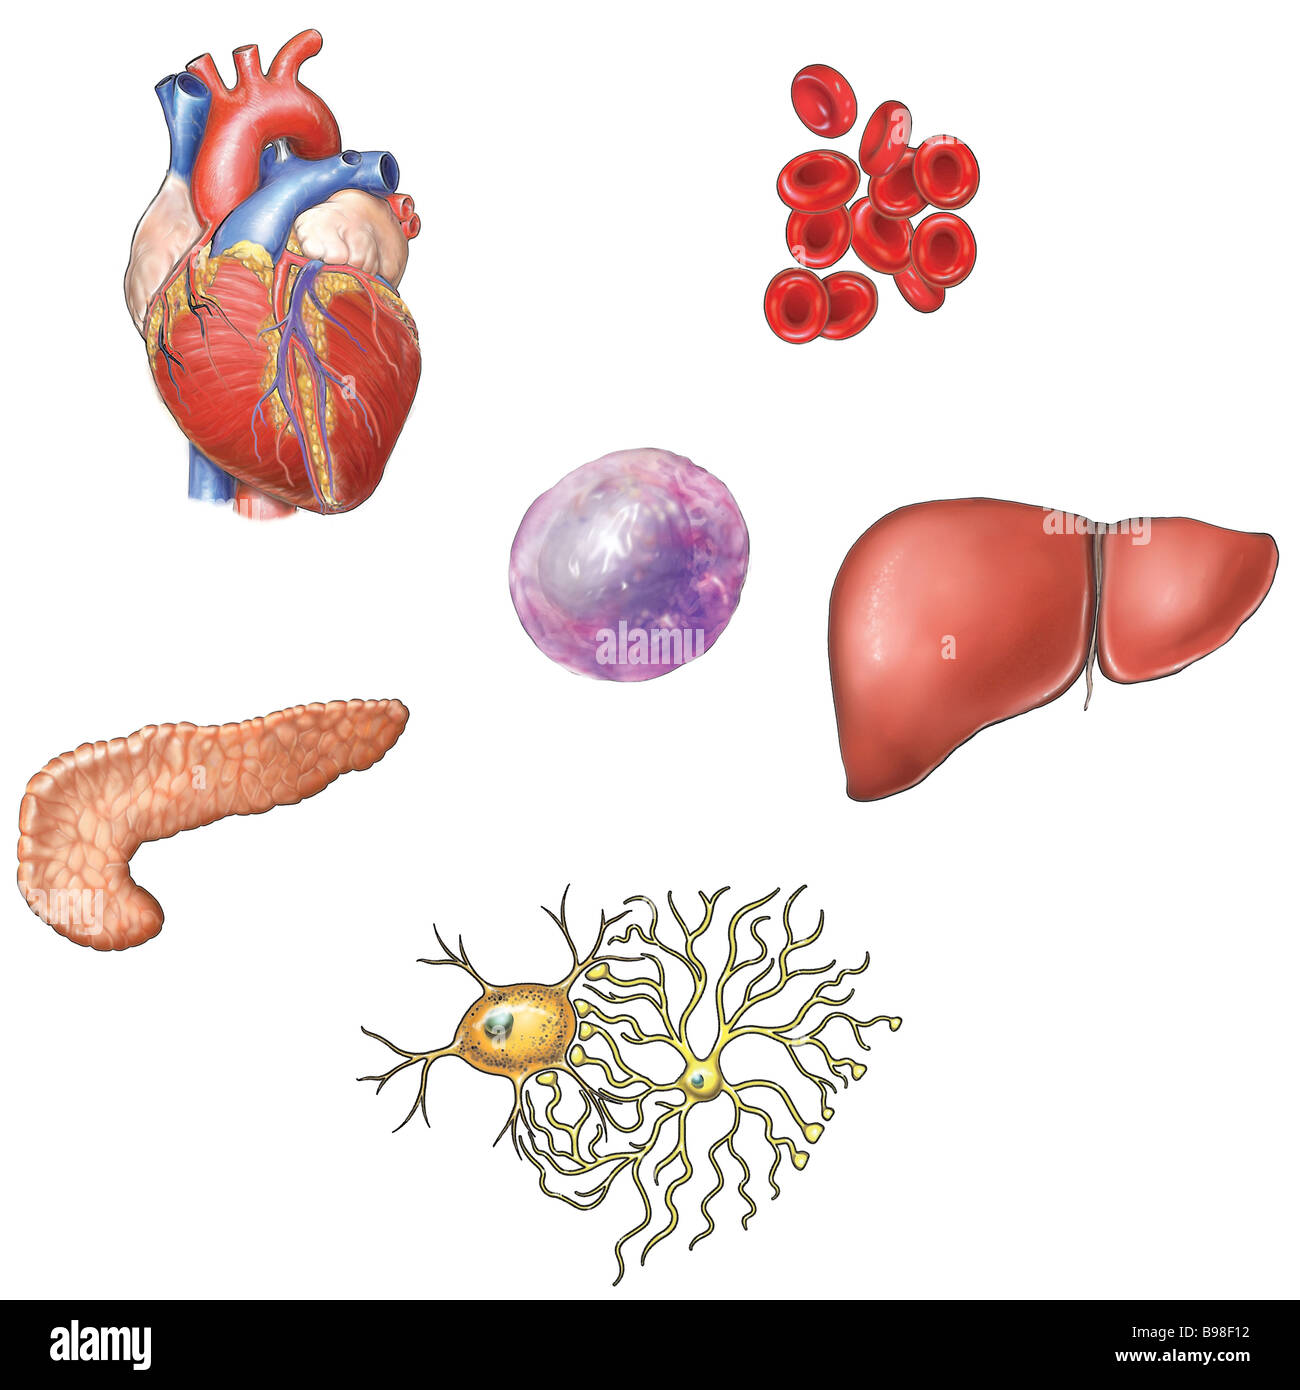 Stem Cell Research - Organs - Stock Image